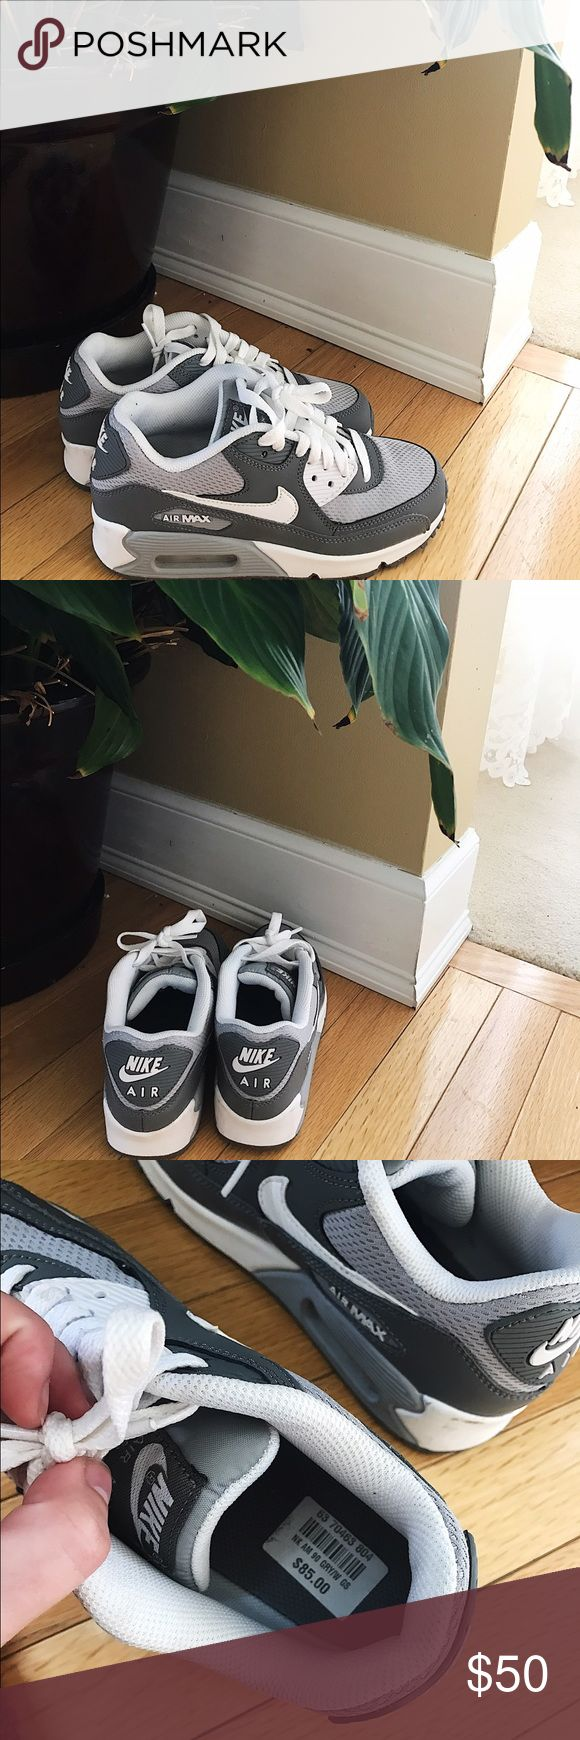 Grey & White Nike Air Max Grey & White Nike Air Max. Worn once. Too small for me. These are a size 4 youth, meaning they will fit size 5.5 or 6 in women's. No signs of wear! Nike Shoes Sneakers